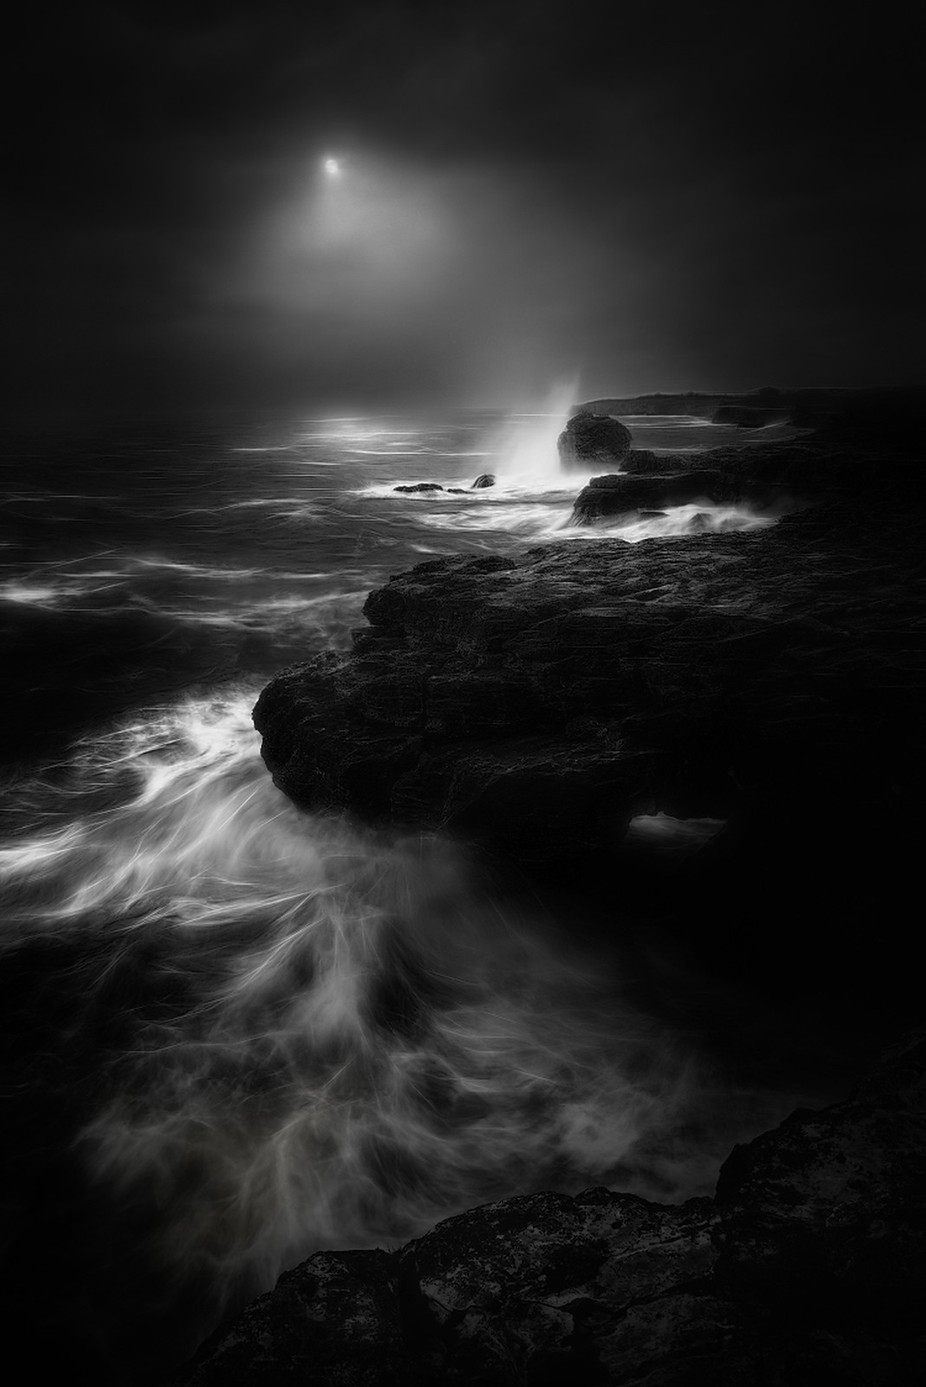 Stormy Black Sea by swqaz - Spectacular Cliffs Photo Contest